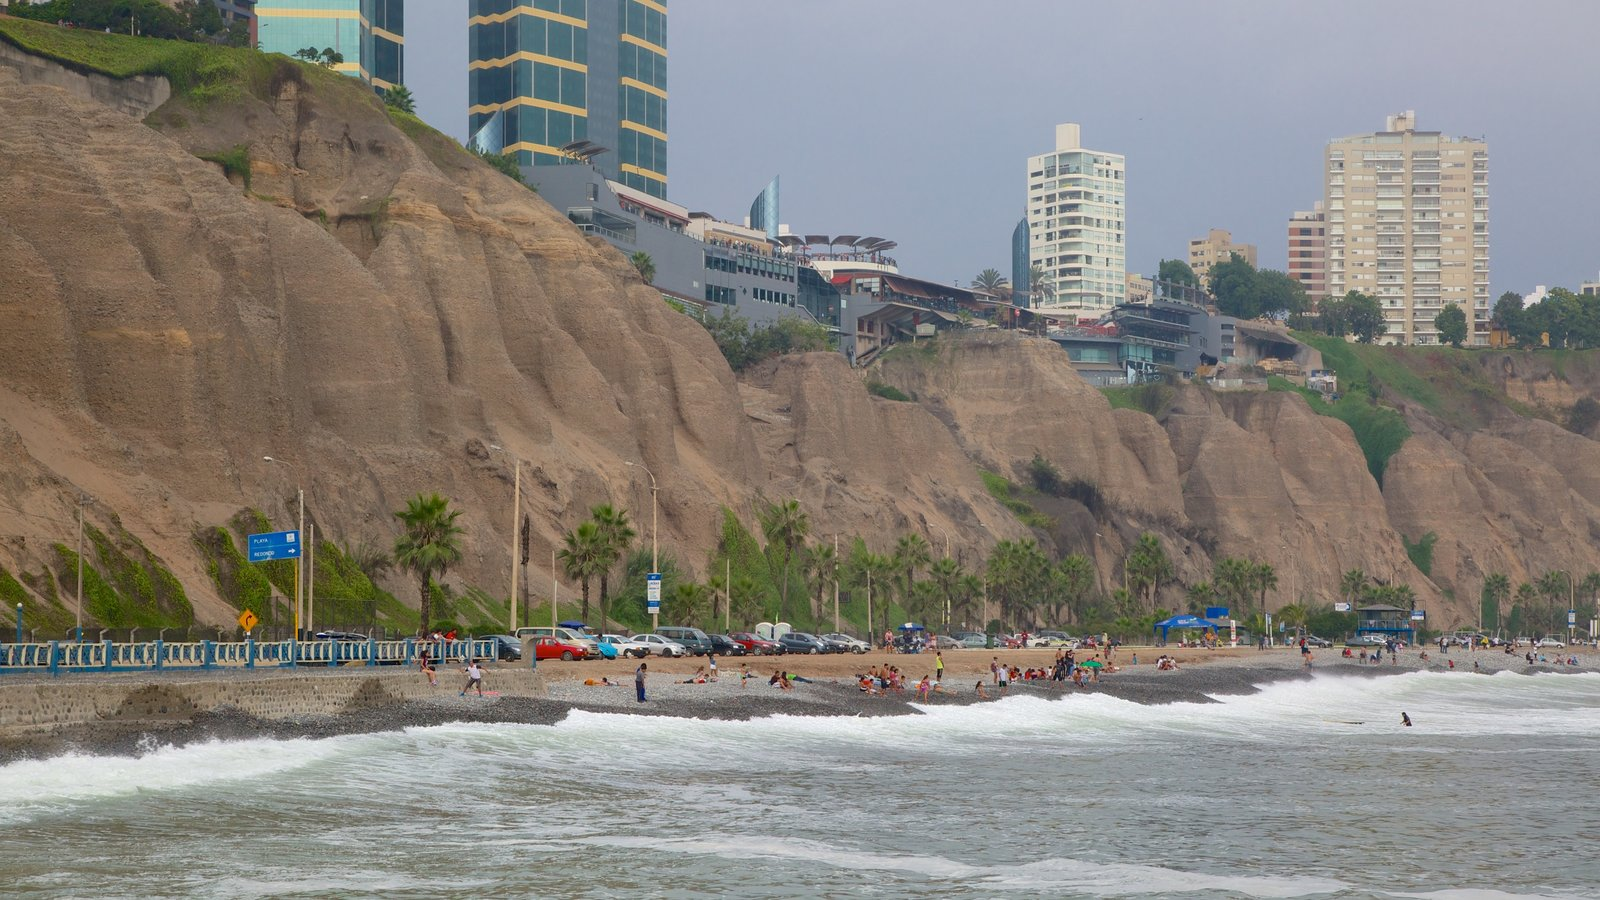 Lima showing rugged coastline